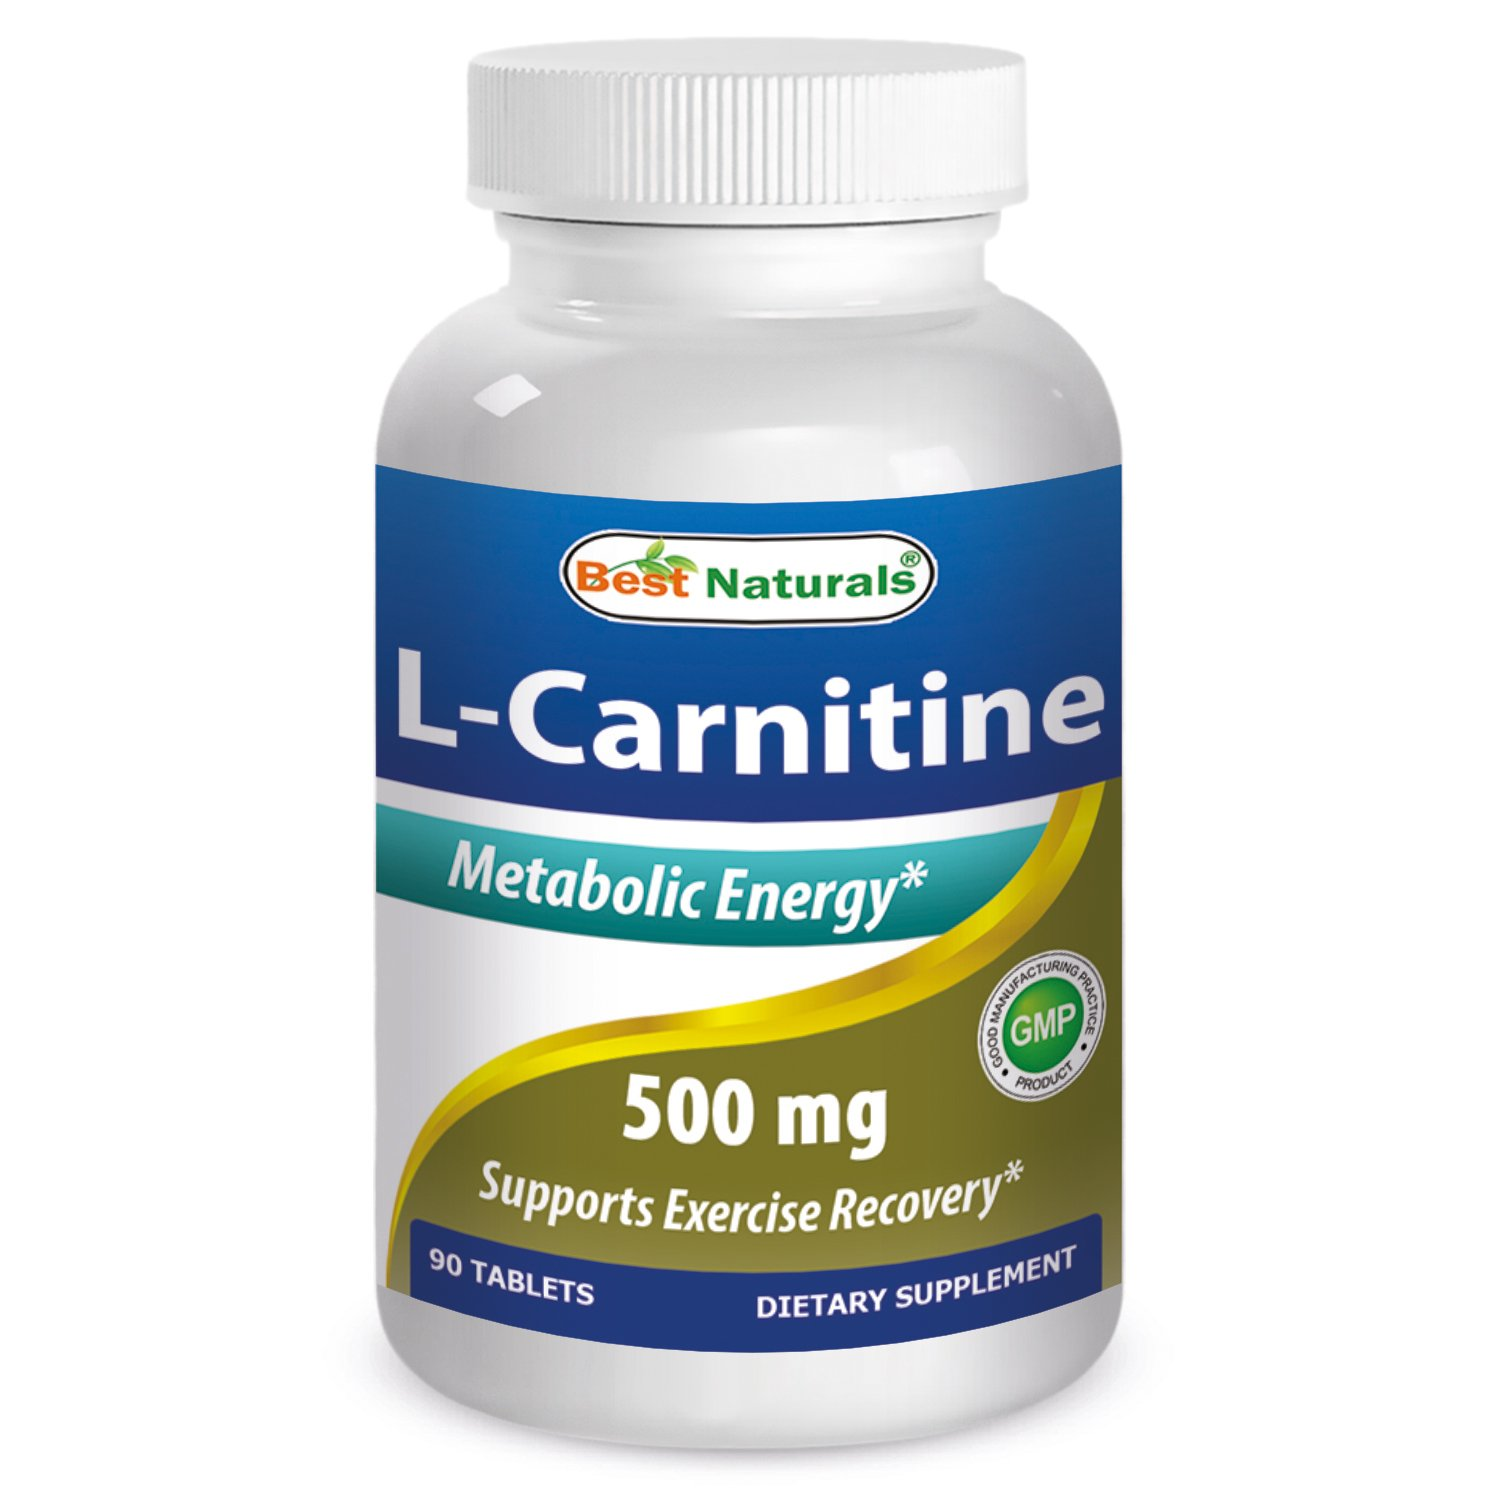 Best Naturals L-Carnitine Tartrate 500 mg 90 Tablets by Best Naturals (Image #5)